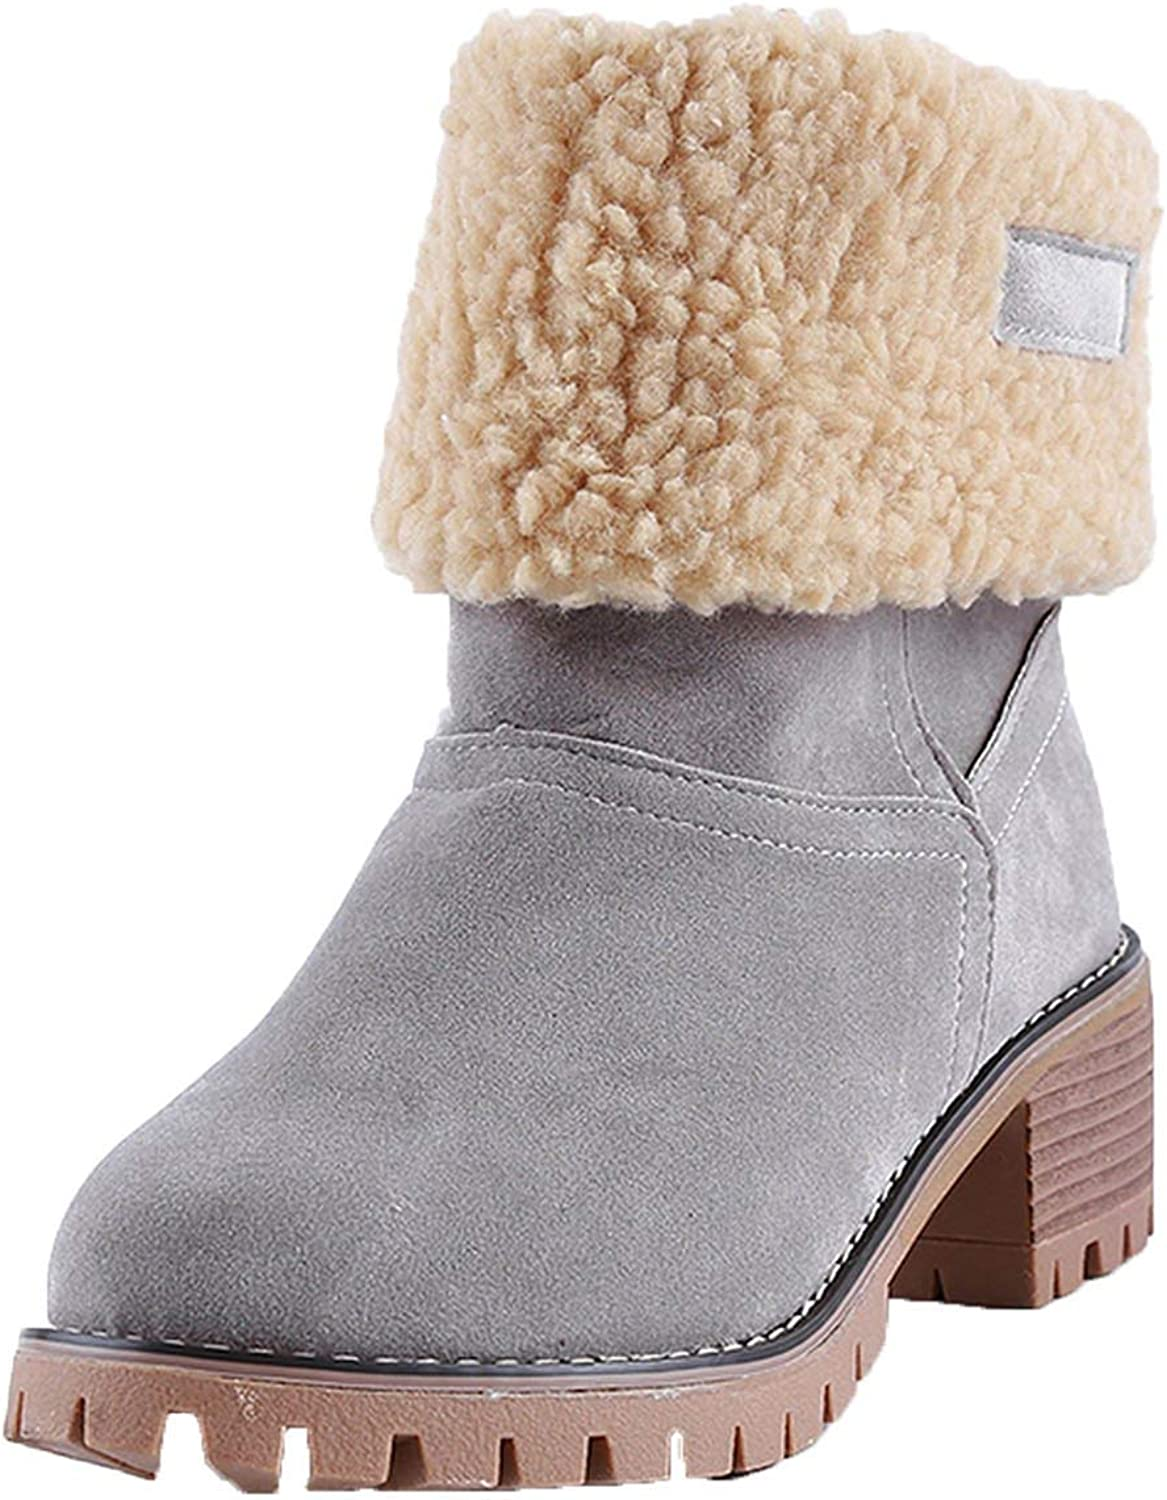 Wesex shoes Mid Heels Ankle Boots Footwear Plush Boots Black Green